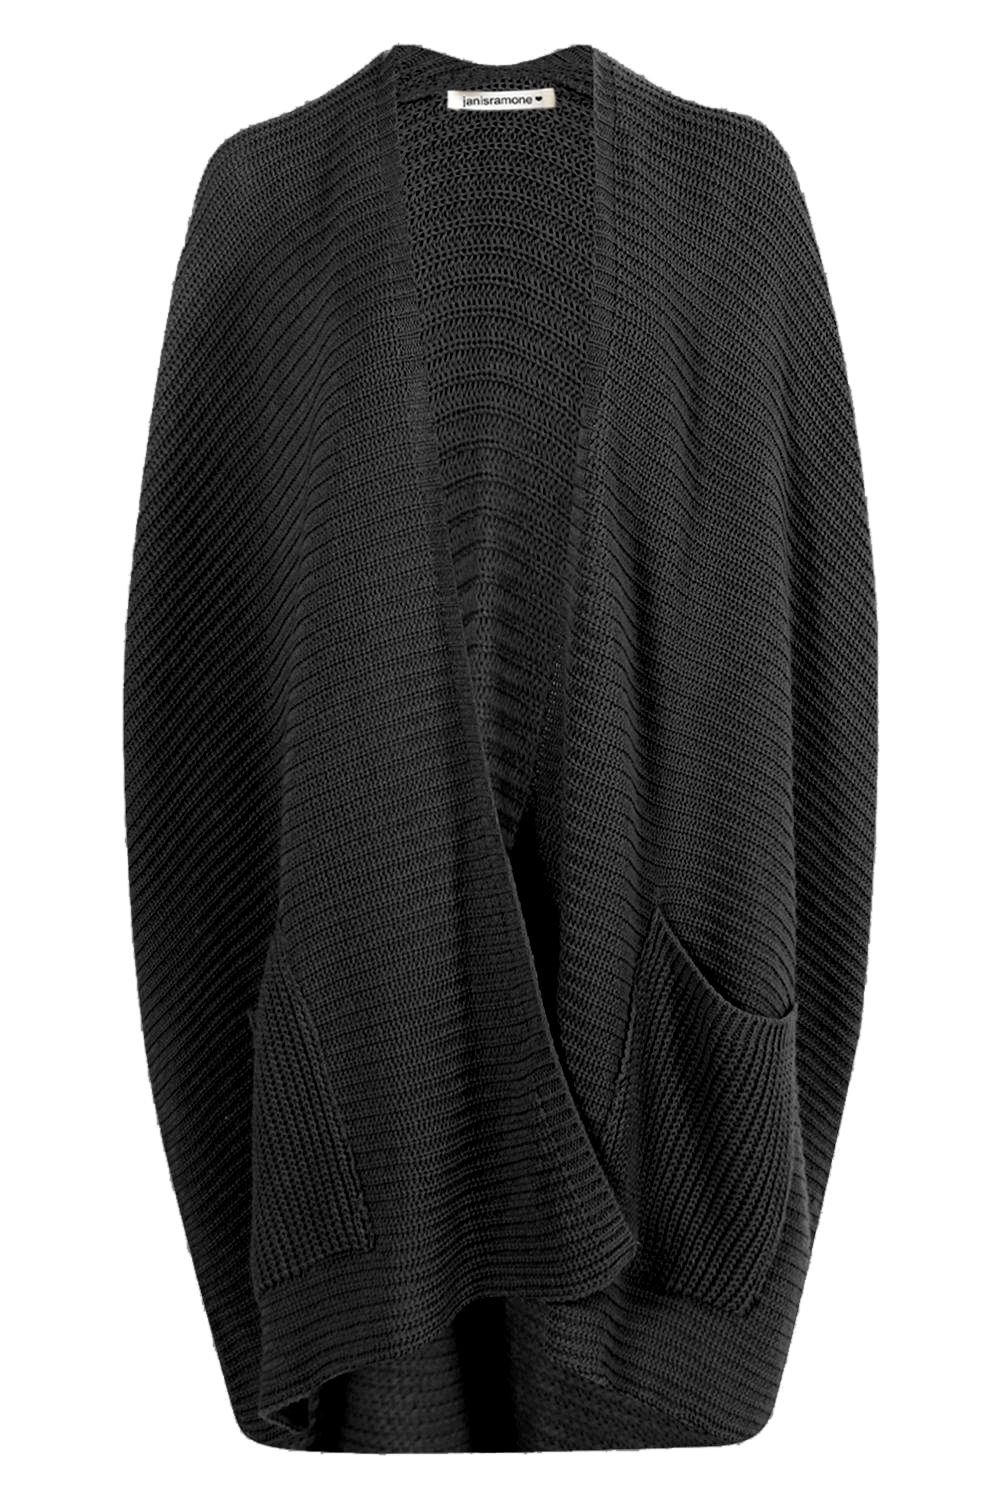 Women's Lightweight Long Sleeve Draped Open Front Long Maxi Cardigan Sweaters. by SimpleFun. $ - $ $ 8 $ 19 99 Prime. FREE Shipping on eligible orders. Some sizes/colors are Prime eligible. out of 5 stars Fantastic Zone Womens Casual Long Sleeve Tunic Tops Round Neck Tunic Shirts With Buttons.